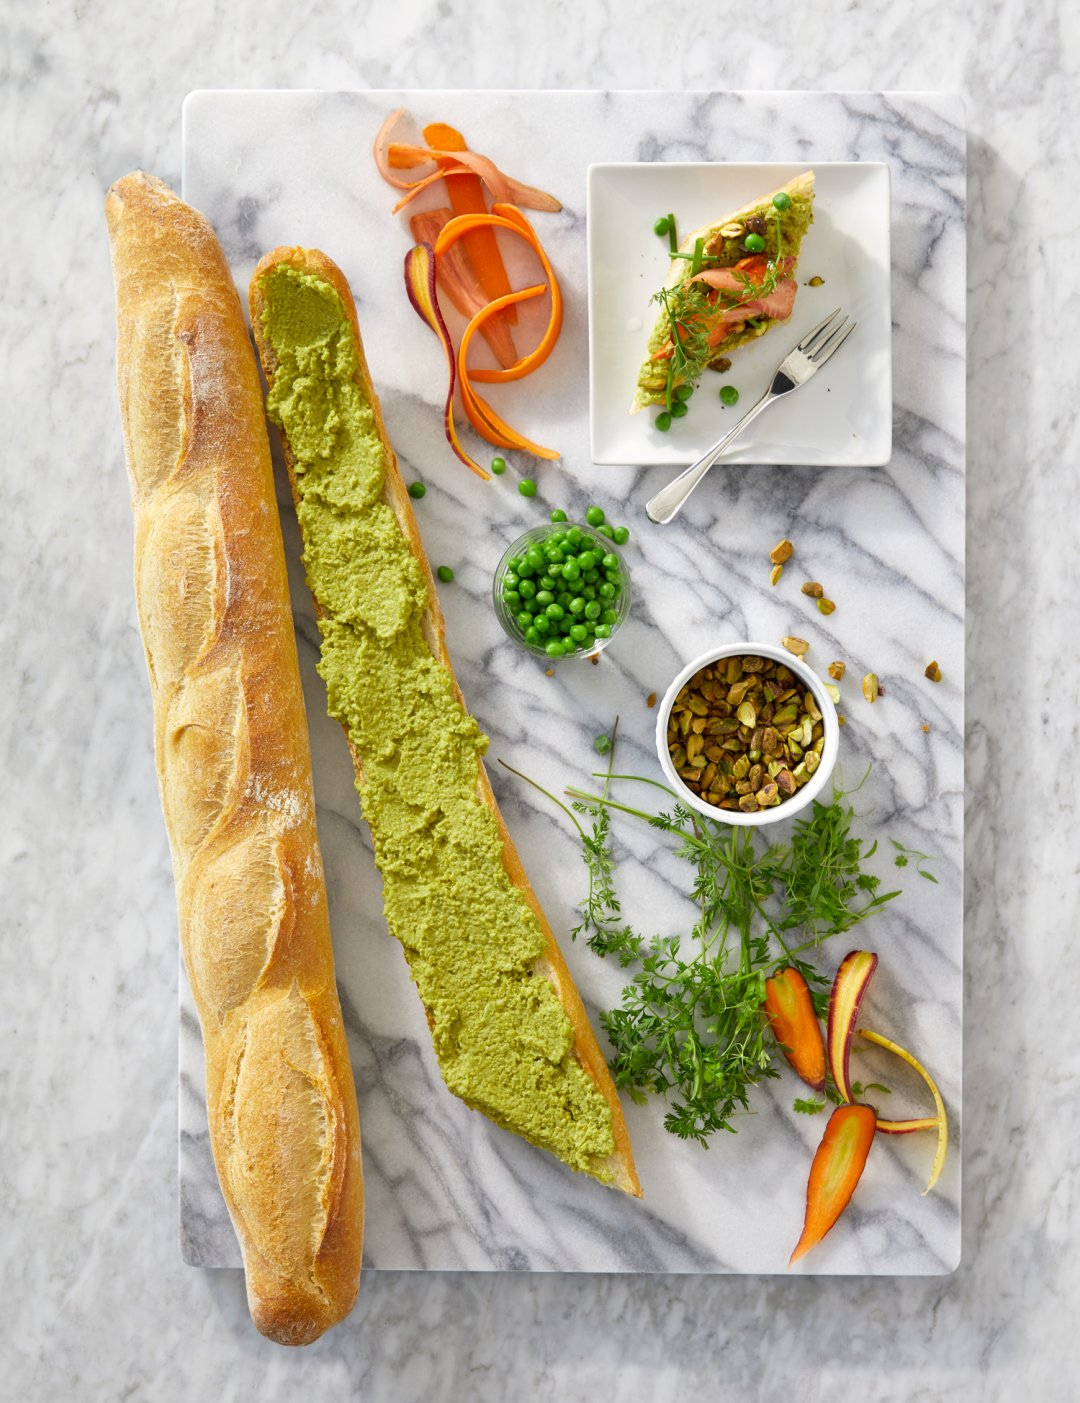 Pea and pistachio hummus spread on a baguette tartine on a marble board